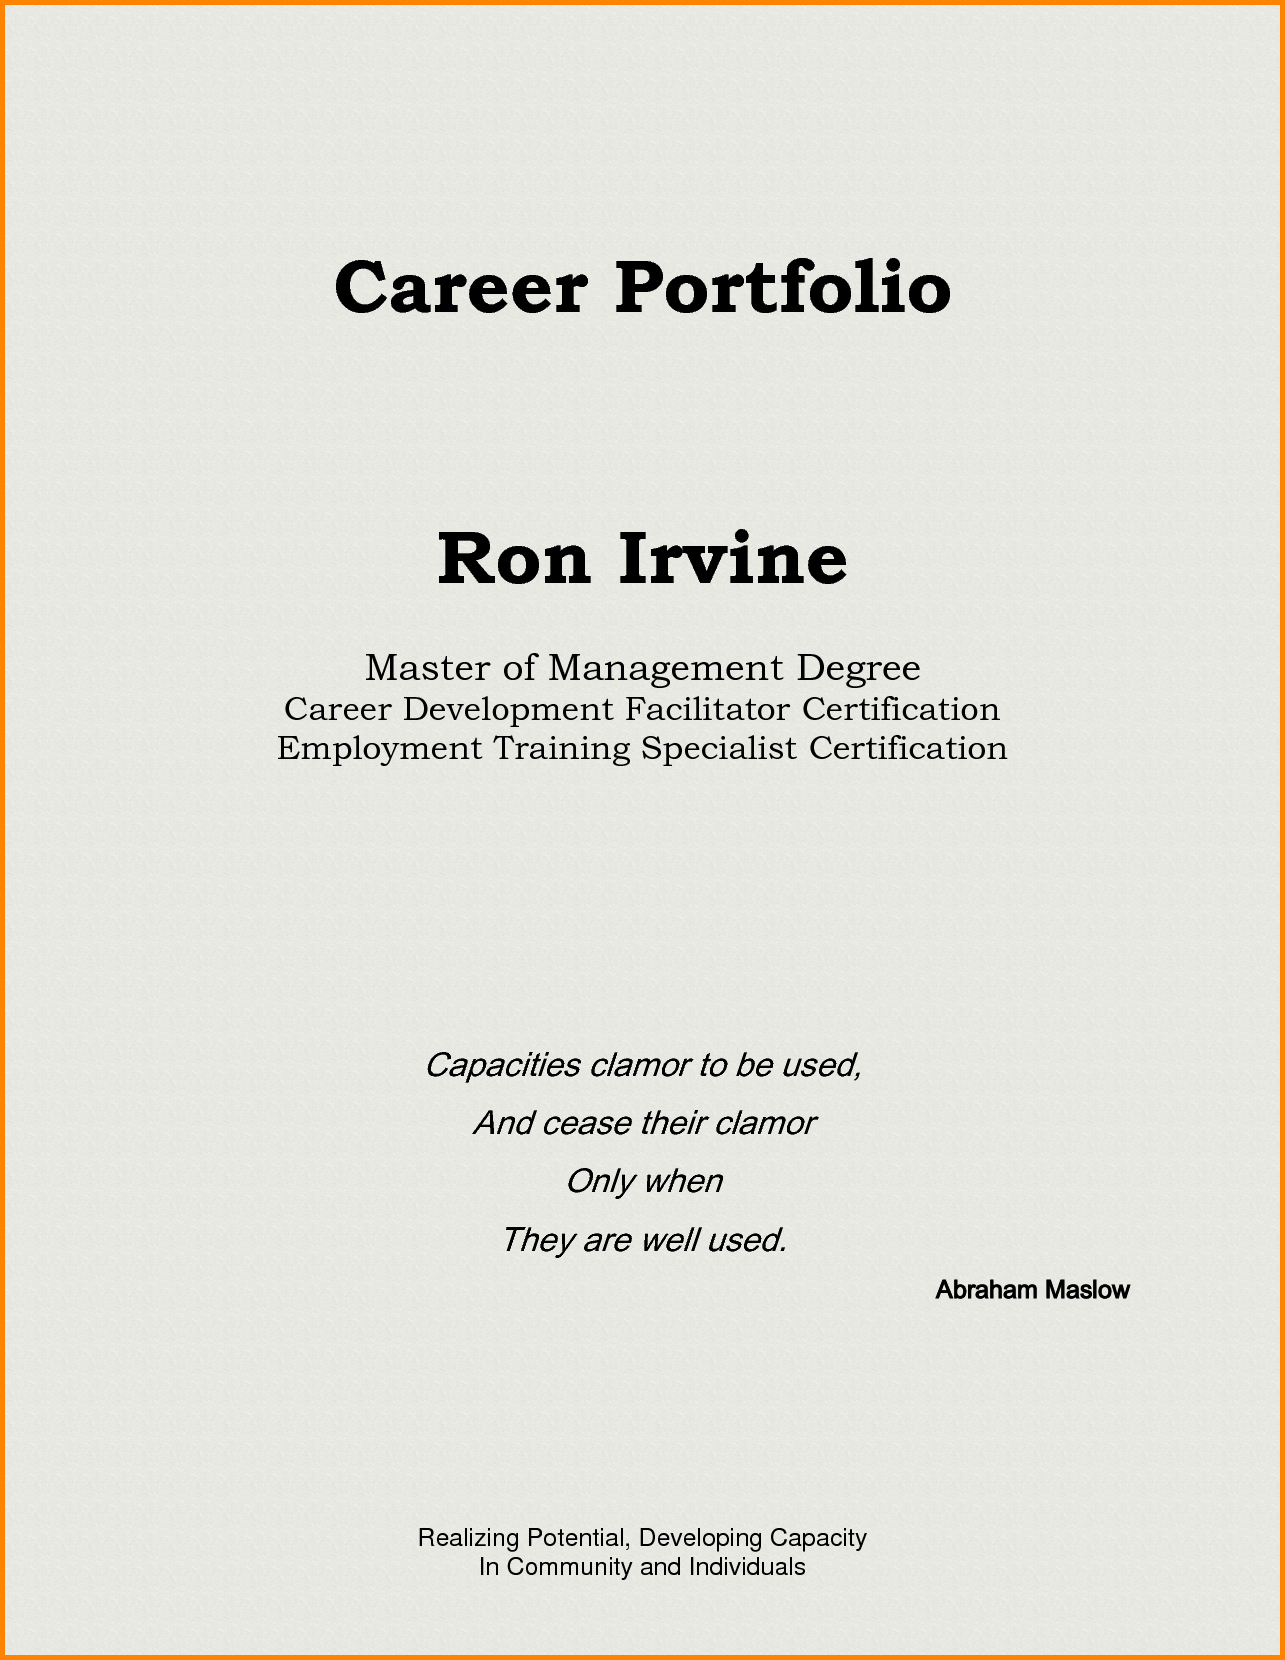 Sample Cover Page for Resume Awesome Resume Portfolio Cover Page Examples Bongdaao